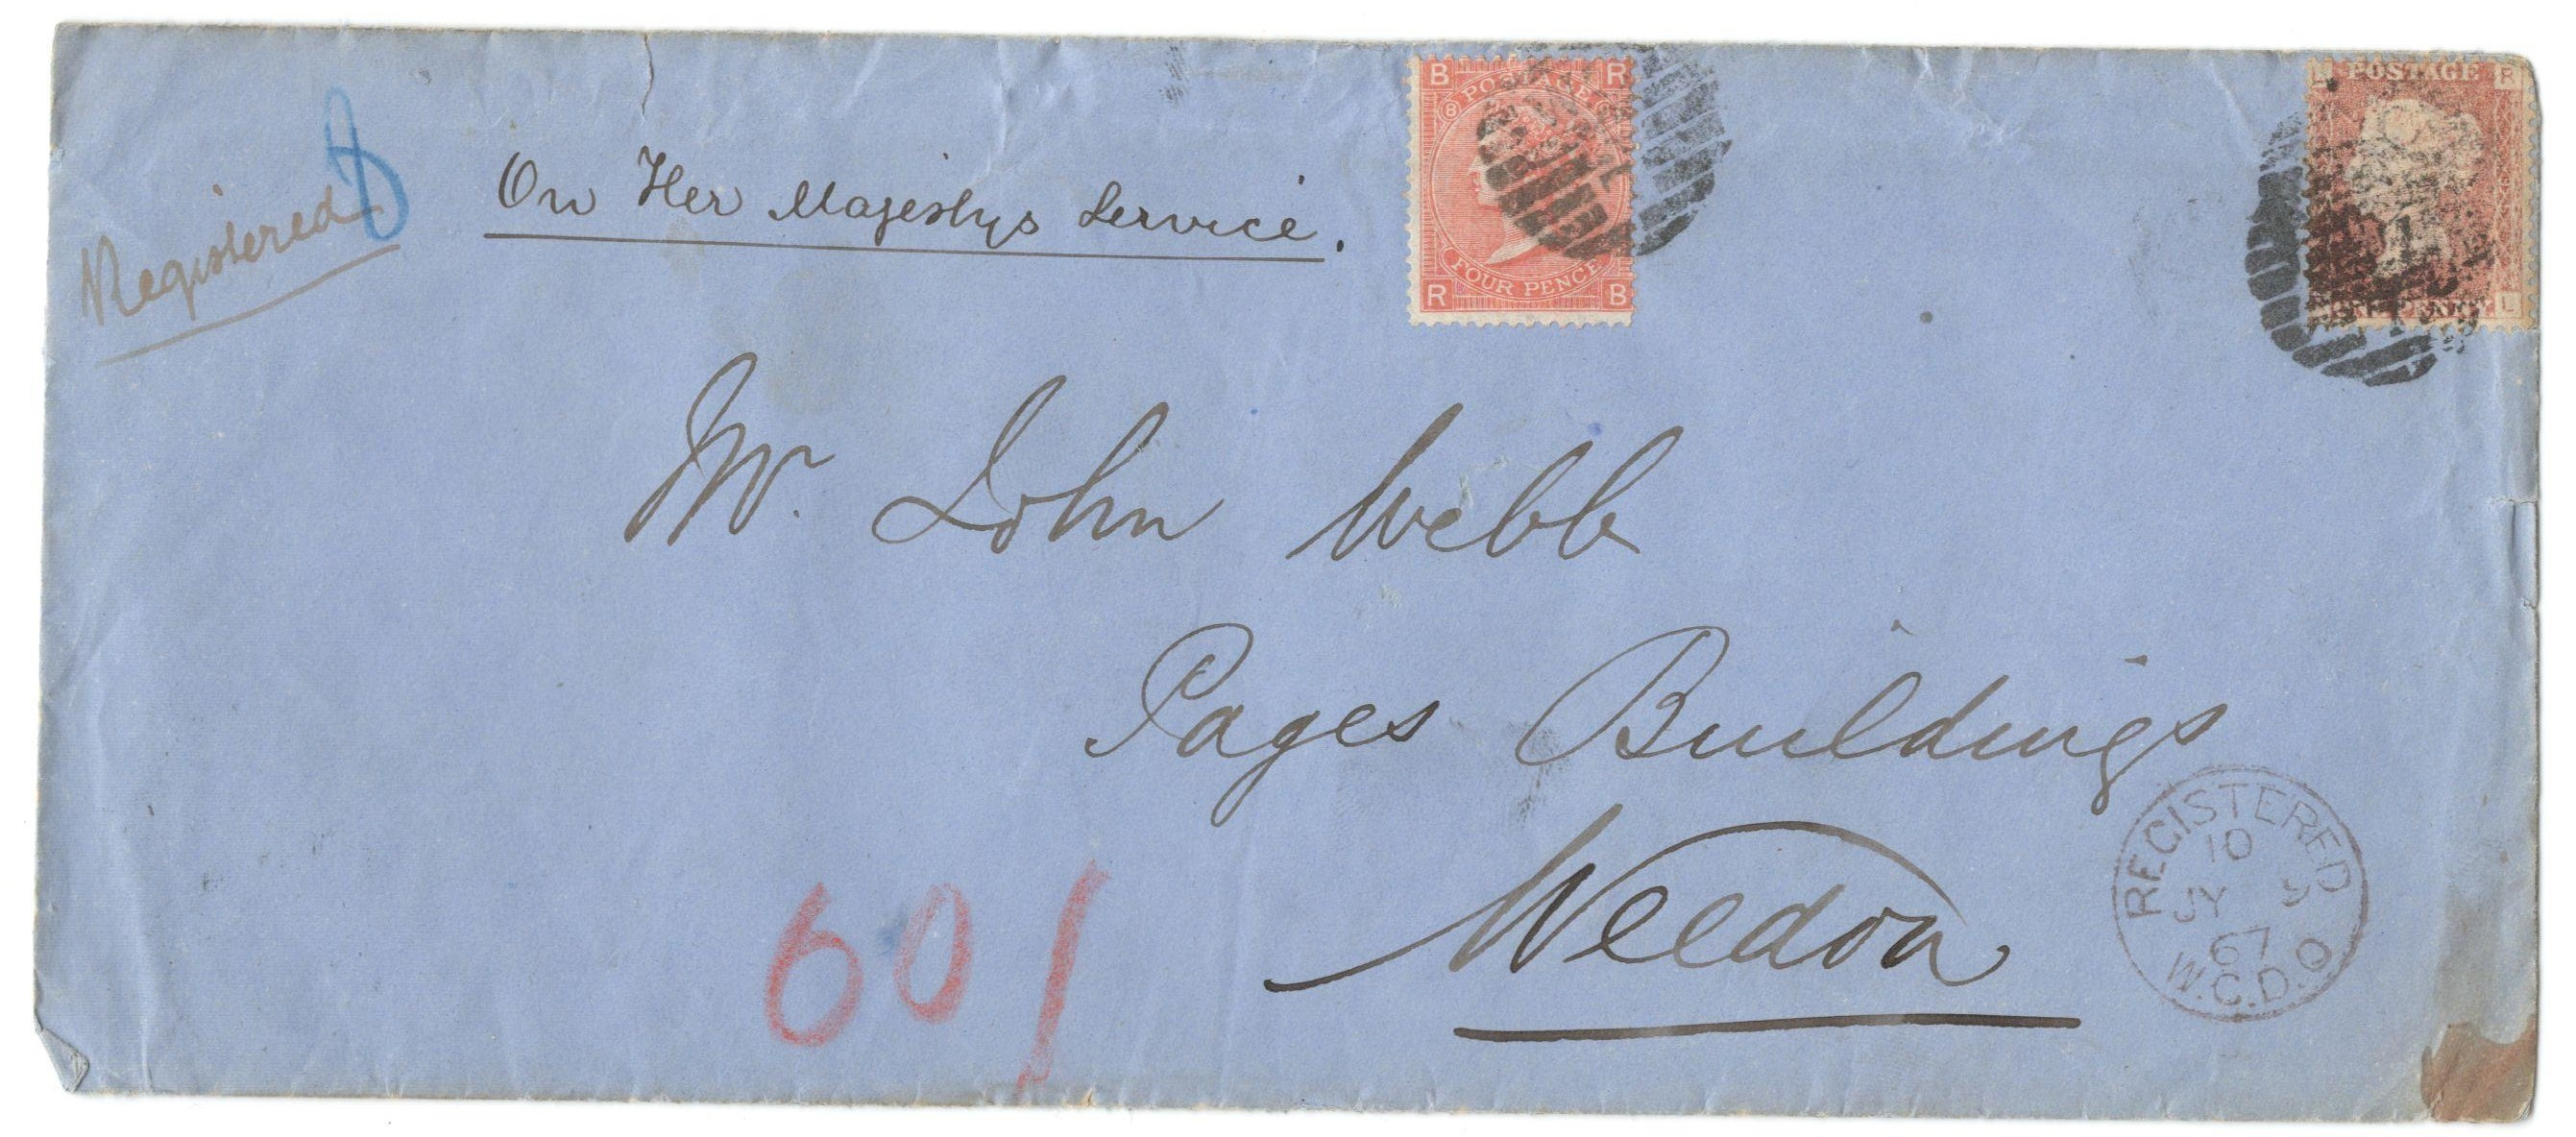 Lot 41 - COVER FROM 1867 TO LAND REGISTRY WITH 4 PENCE AND ACCOMPANYING LETTER WITH FISCAL STAMP